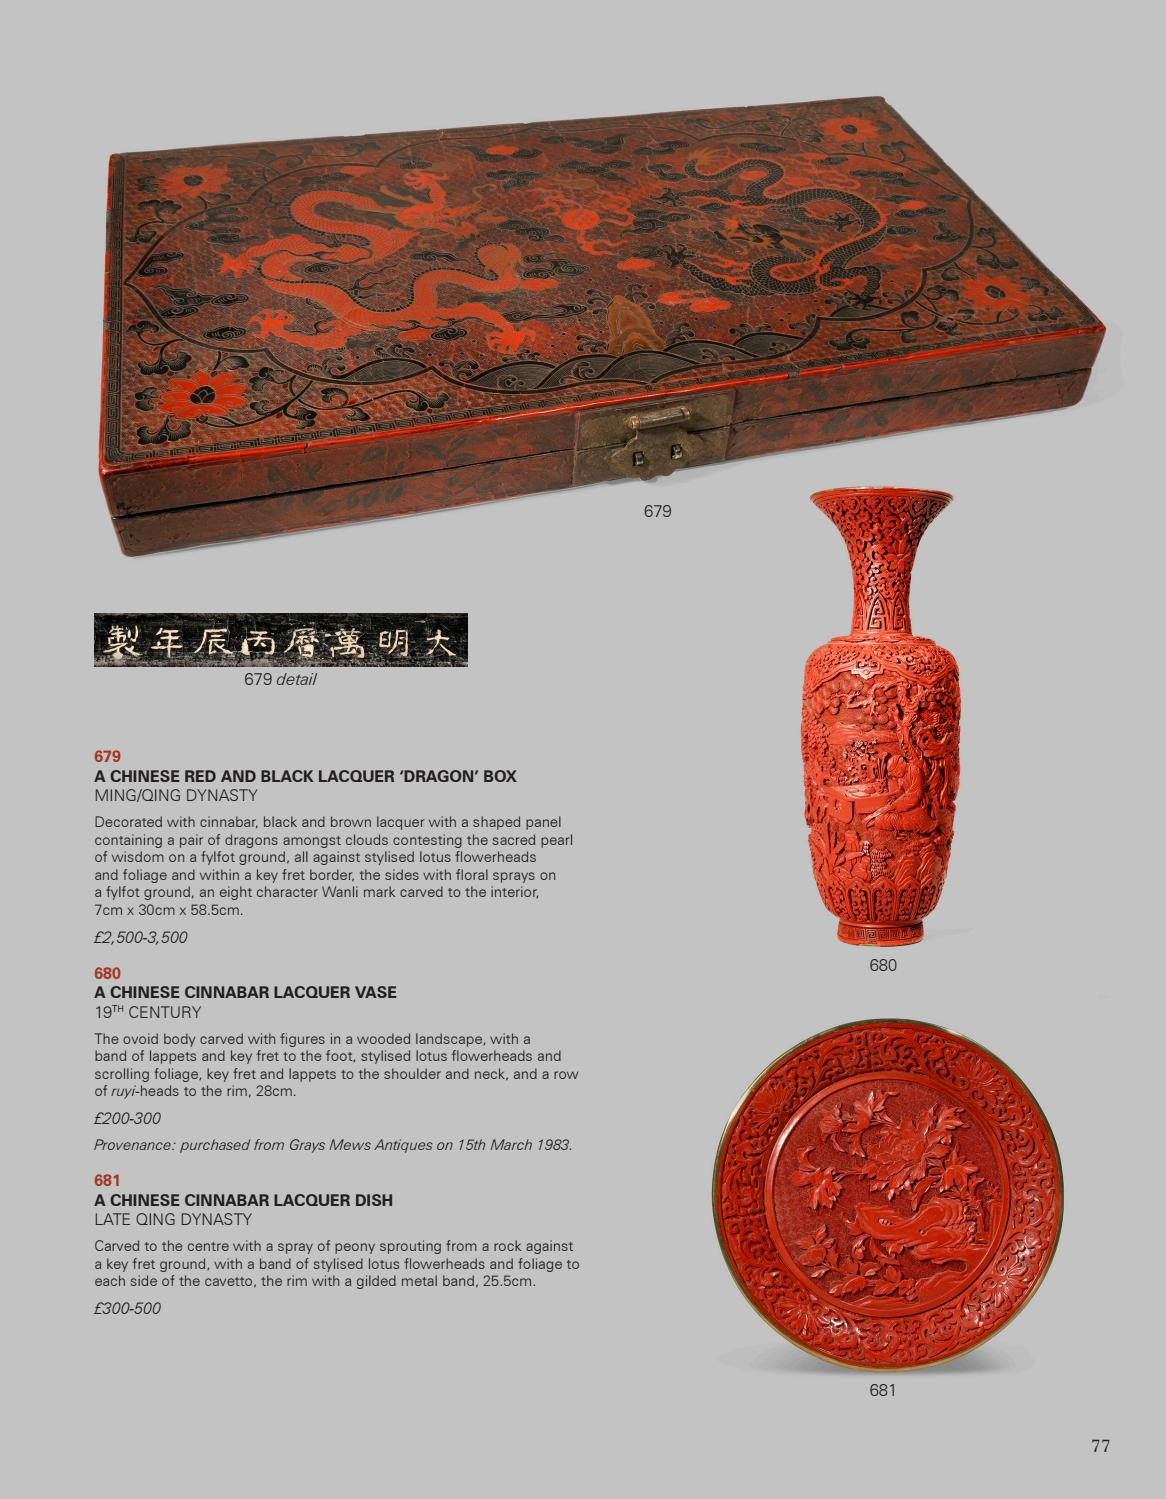 Astounding Woolley Wallis Asian Art Ii Japanese Art By Atgpark Issuu Gmtry Best Dining Table And Chair Ideas Images Gmtryco